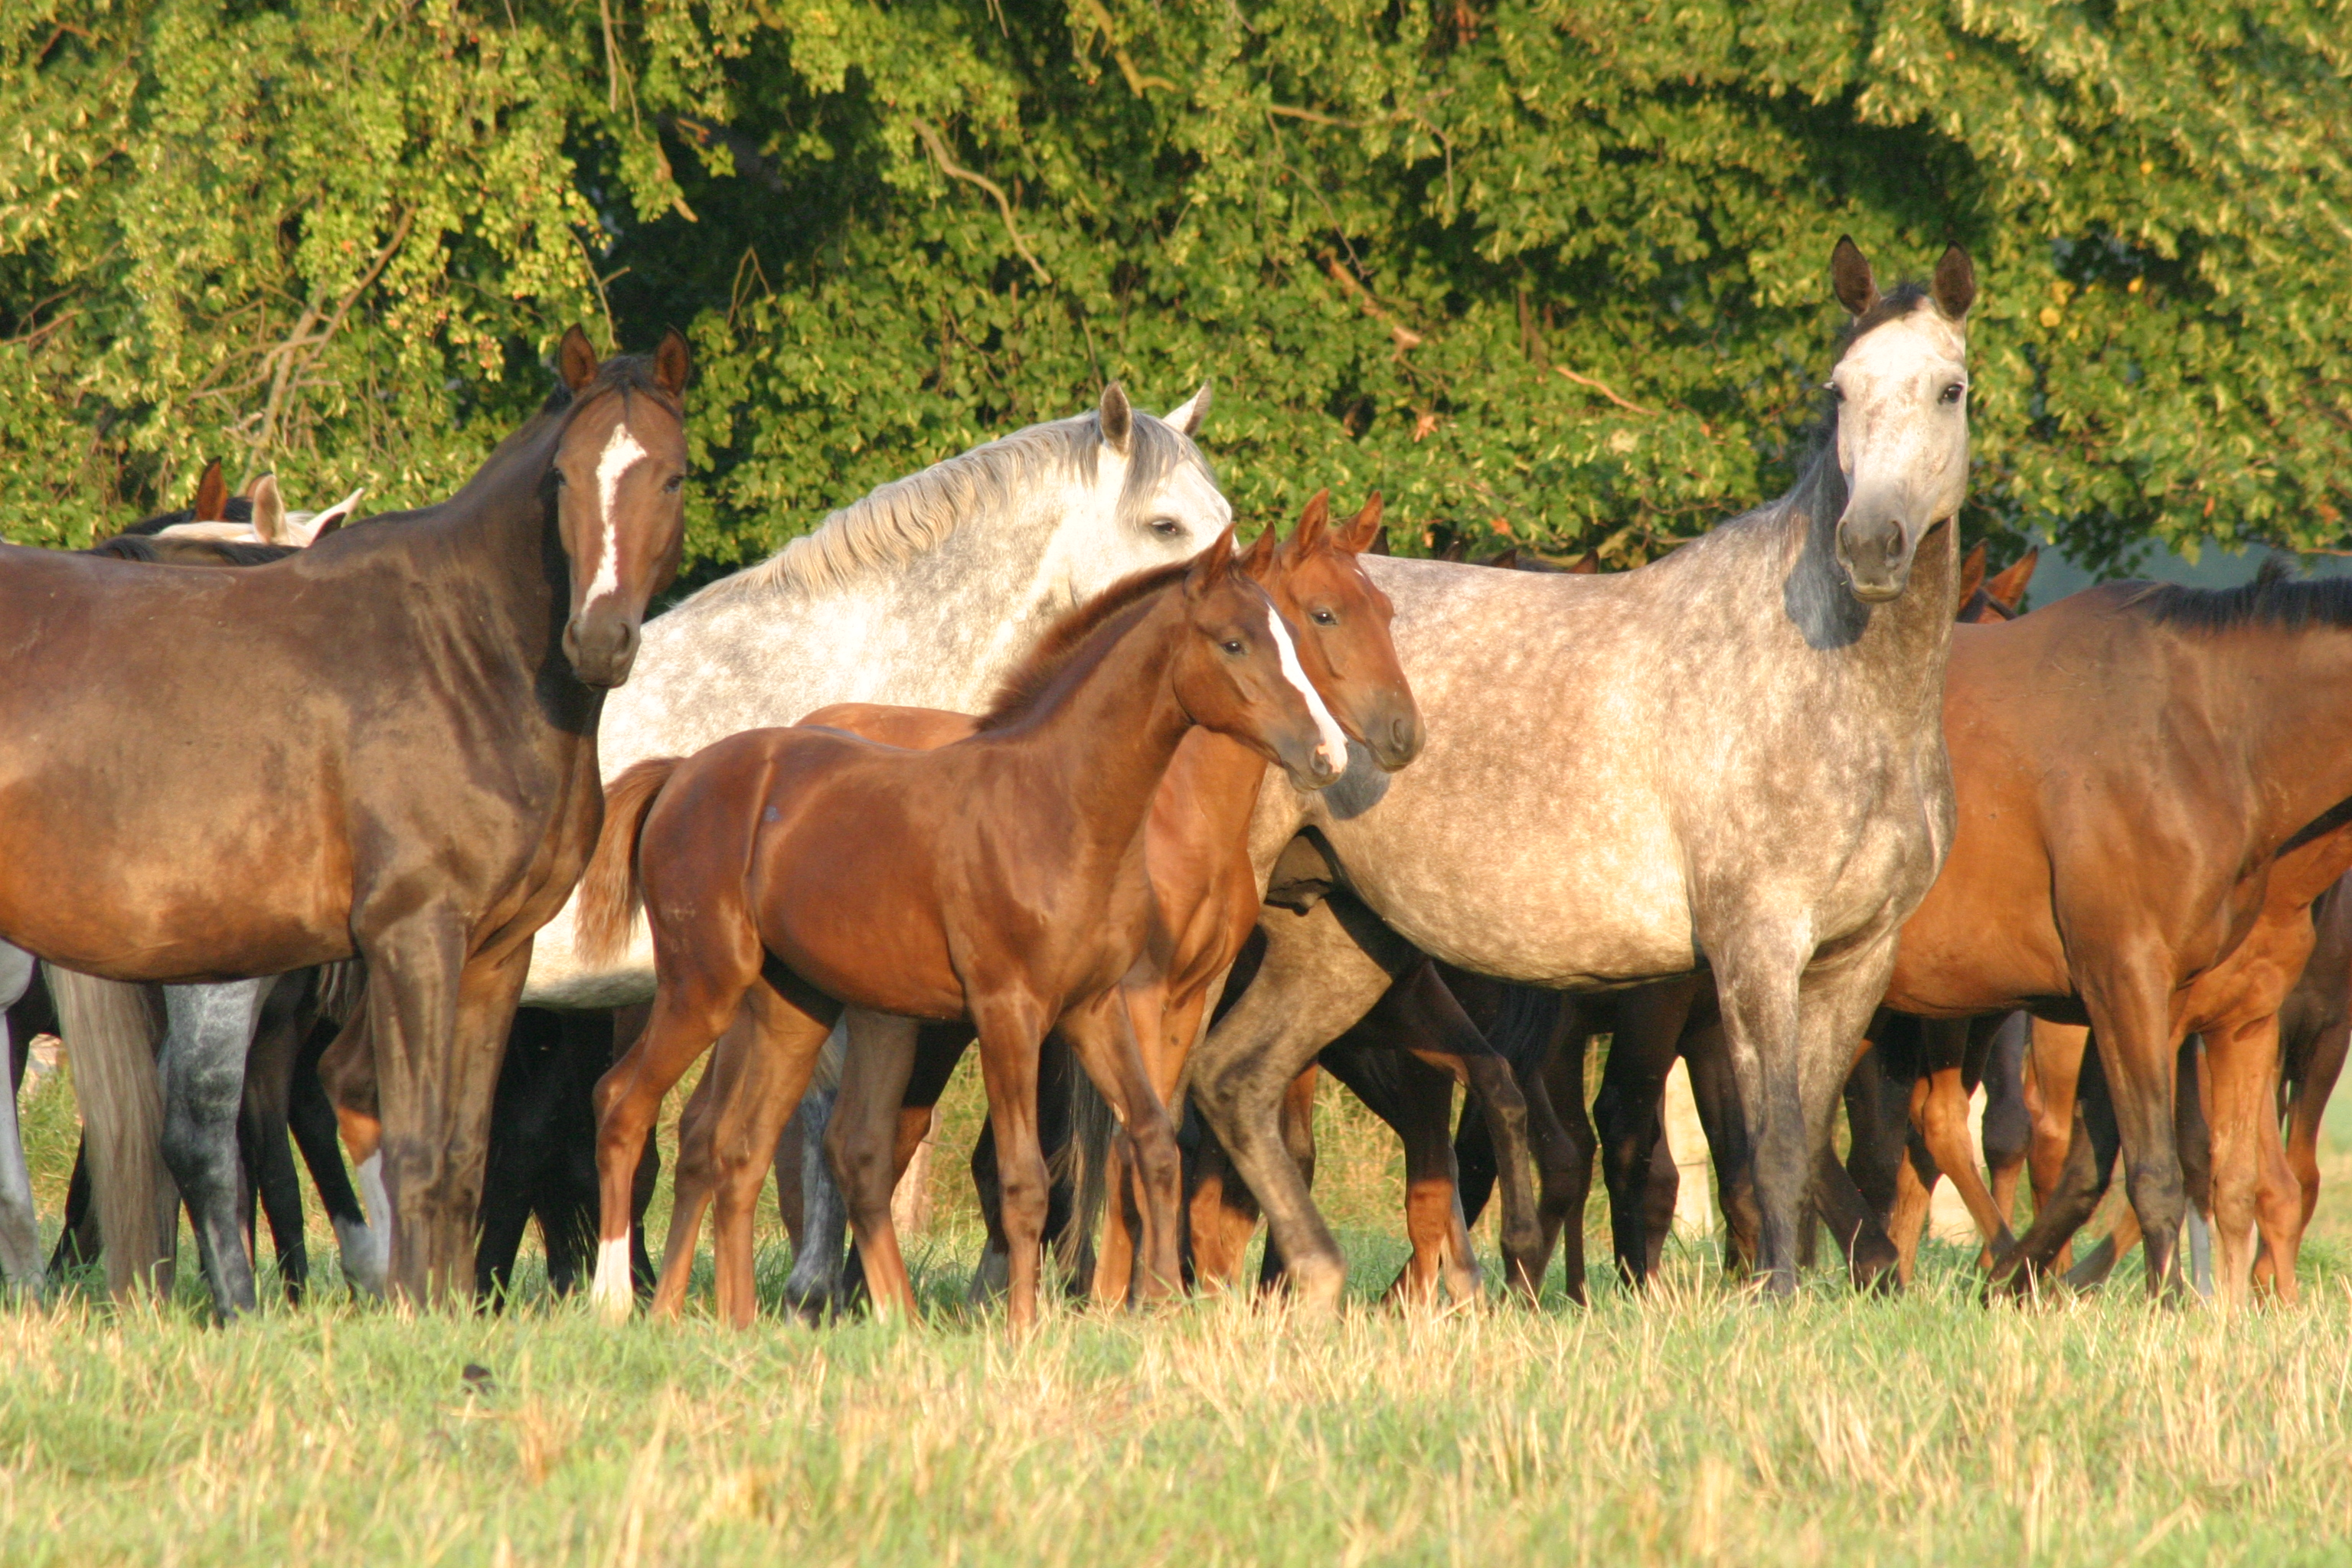 the contribution of mare genetics to gestation length and